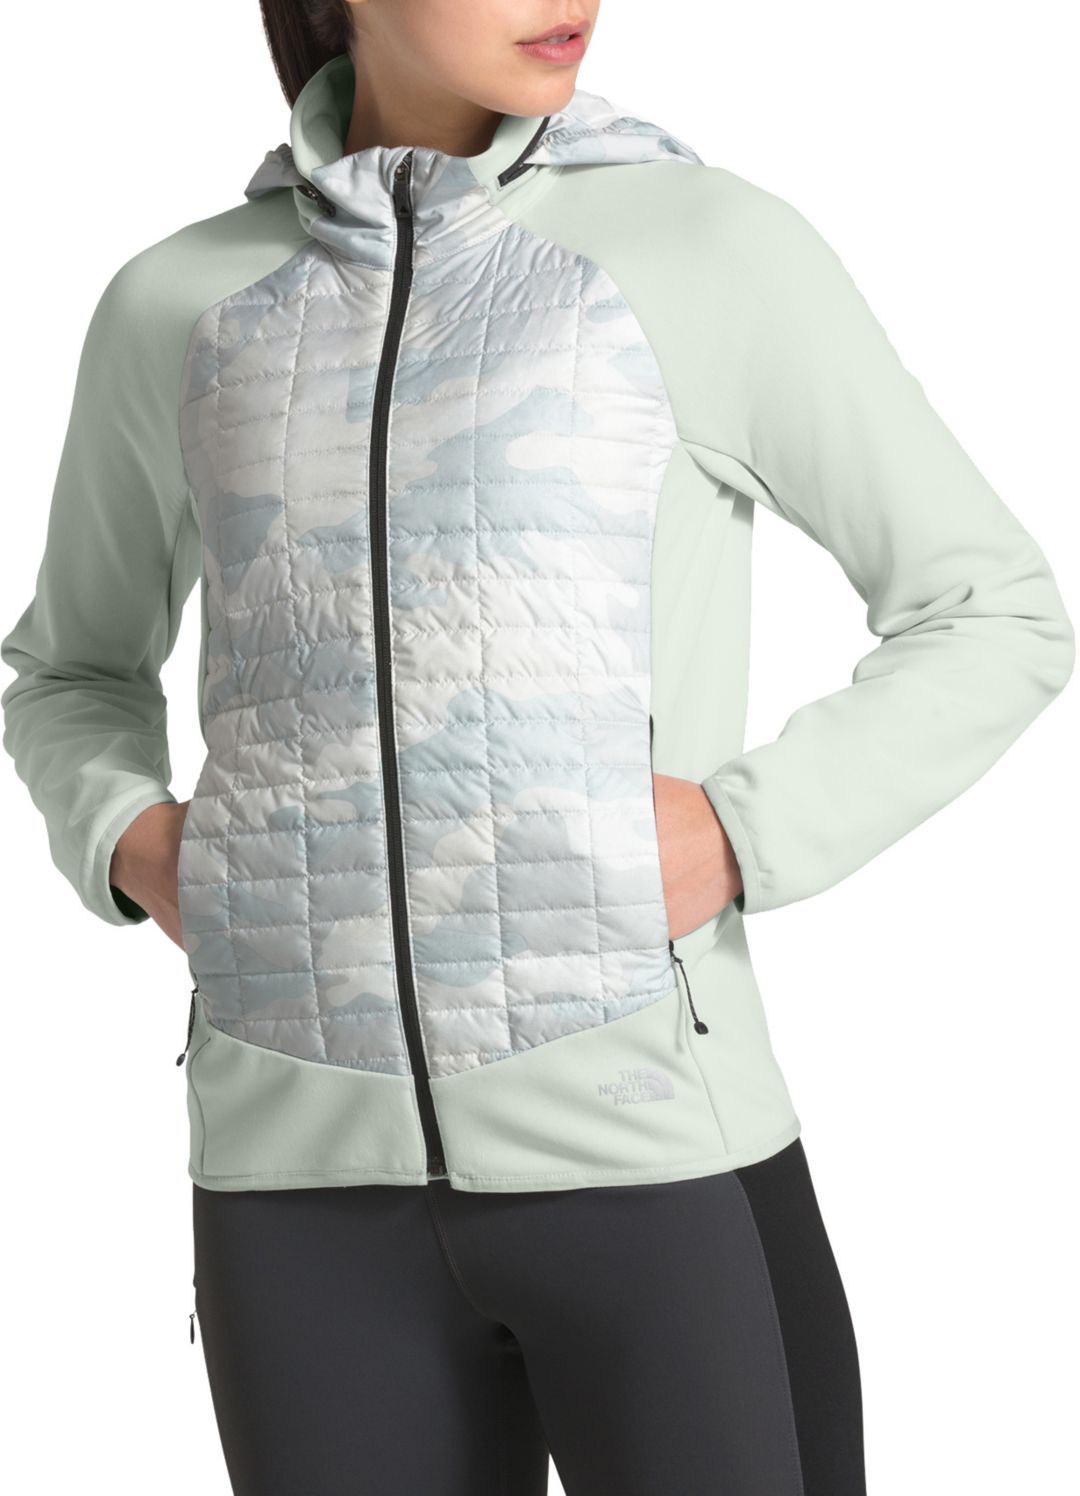 5428e1c4e The North Face Women's ThermoBall Hybrid Jacket